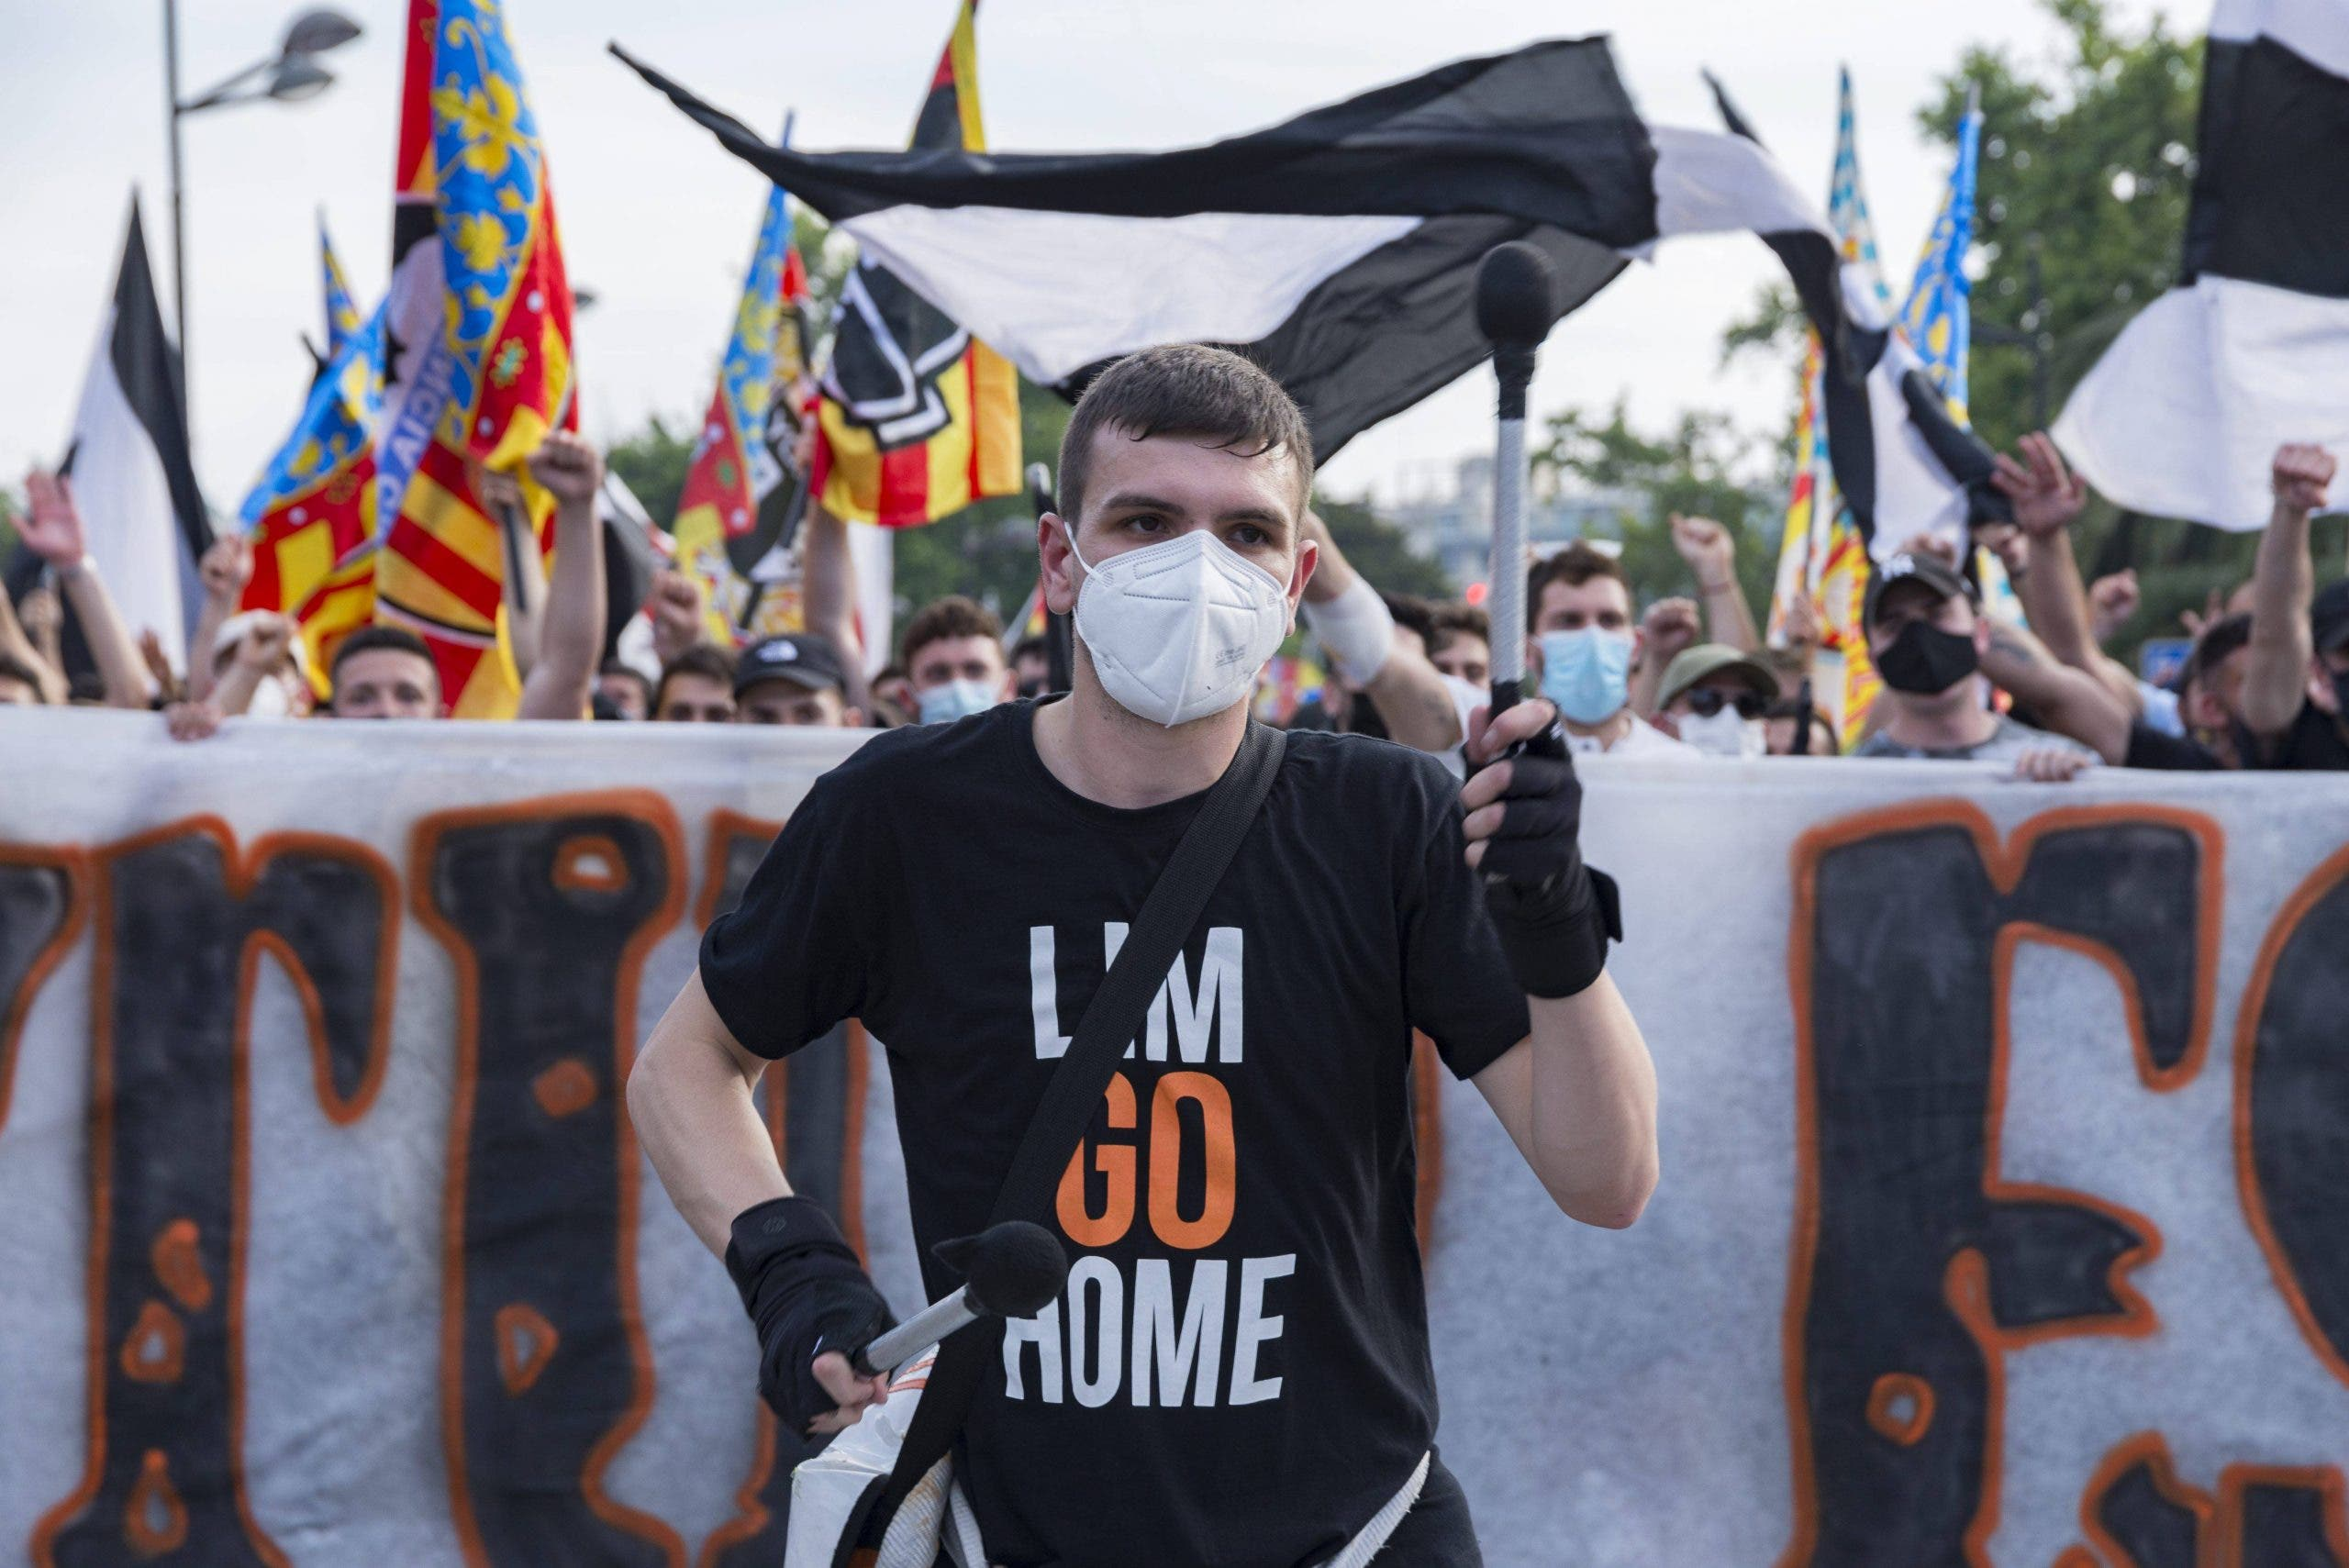 Protest Against The Management Of President Peter Lim In Valencia, Spain 08 May 2021